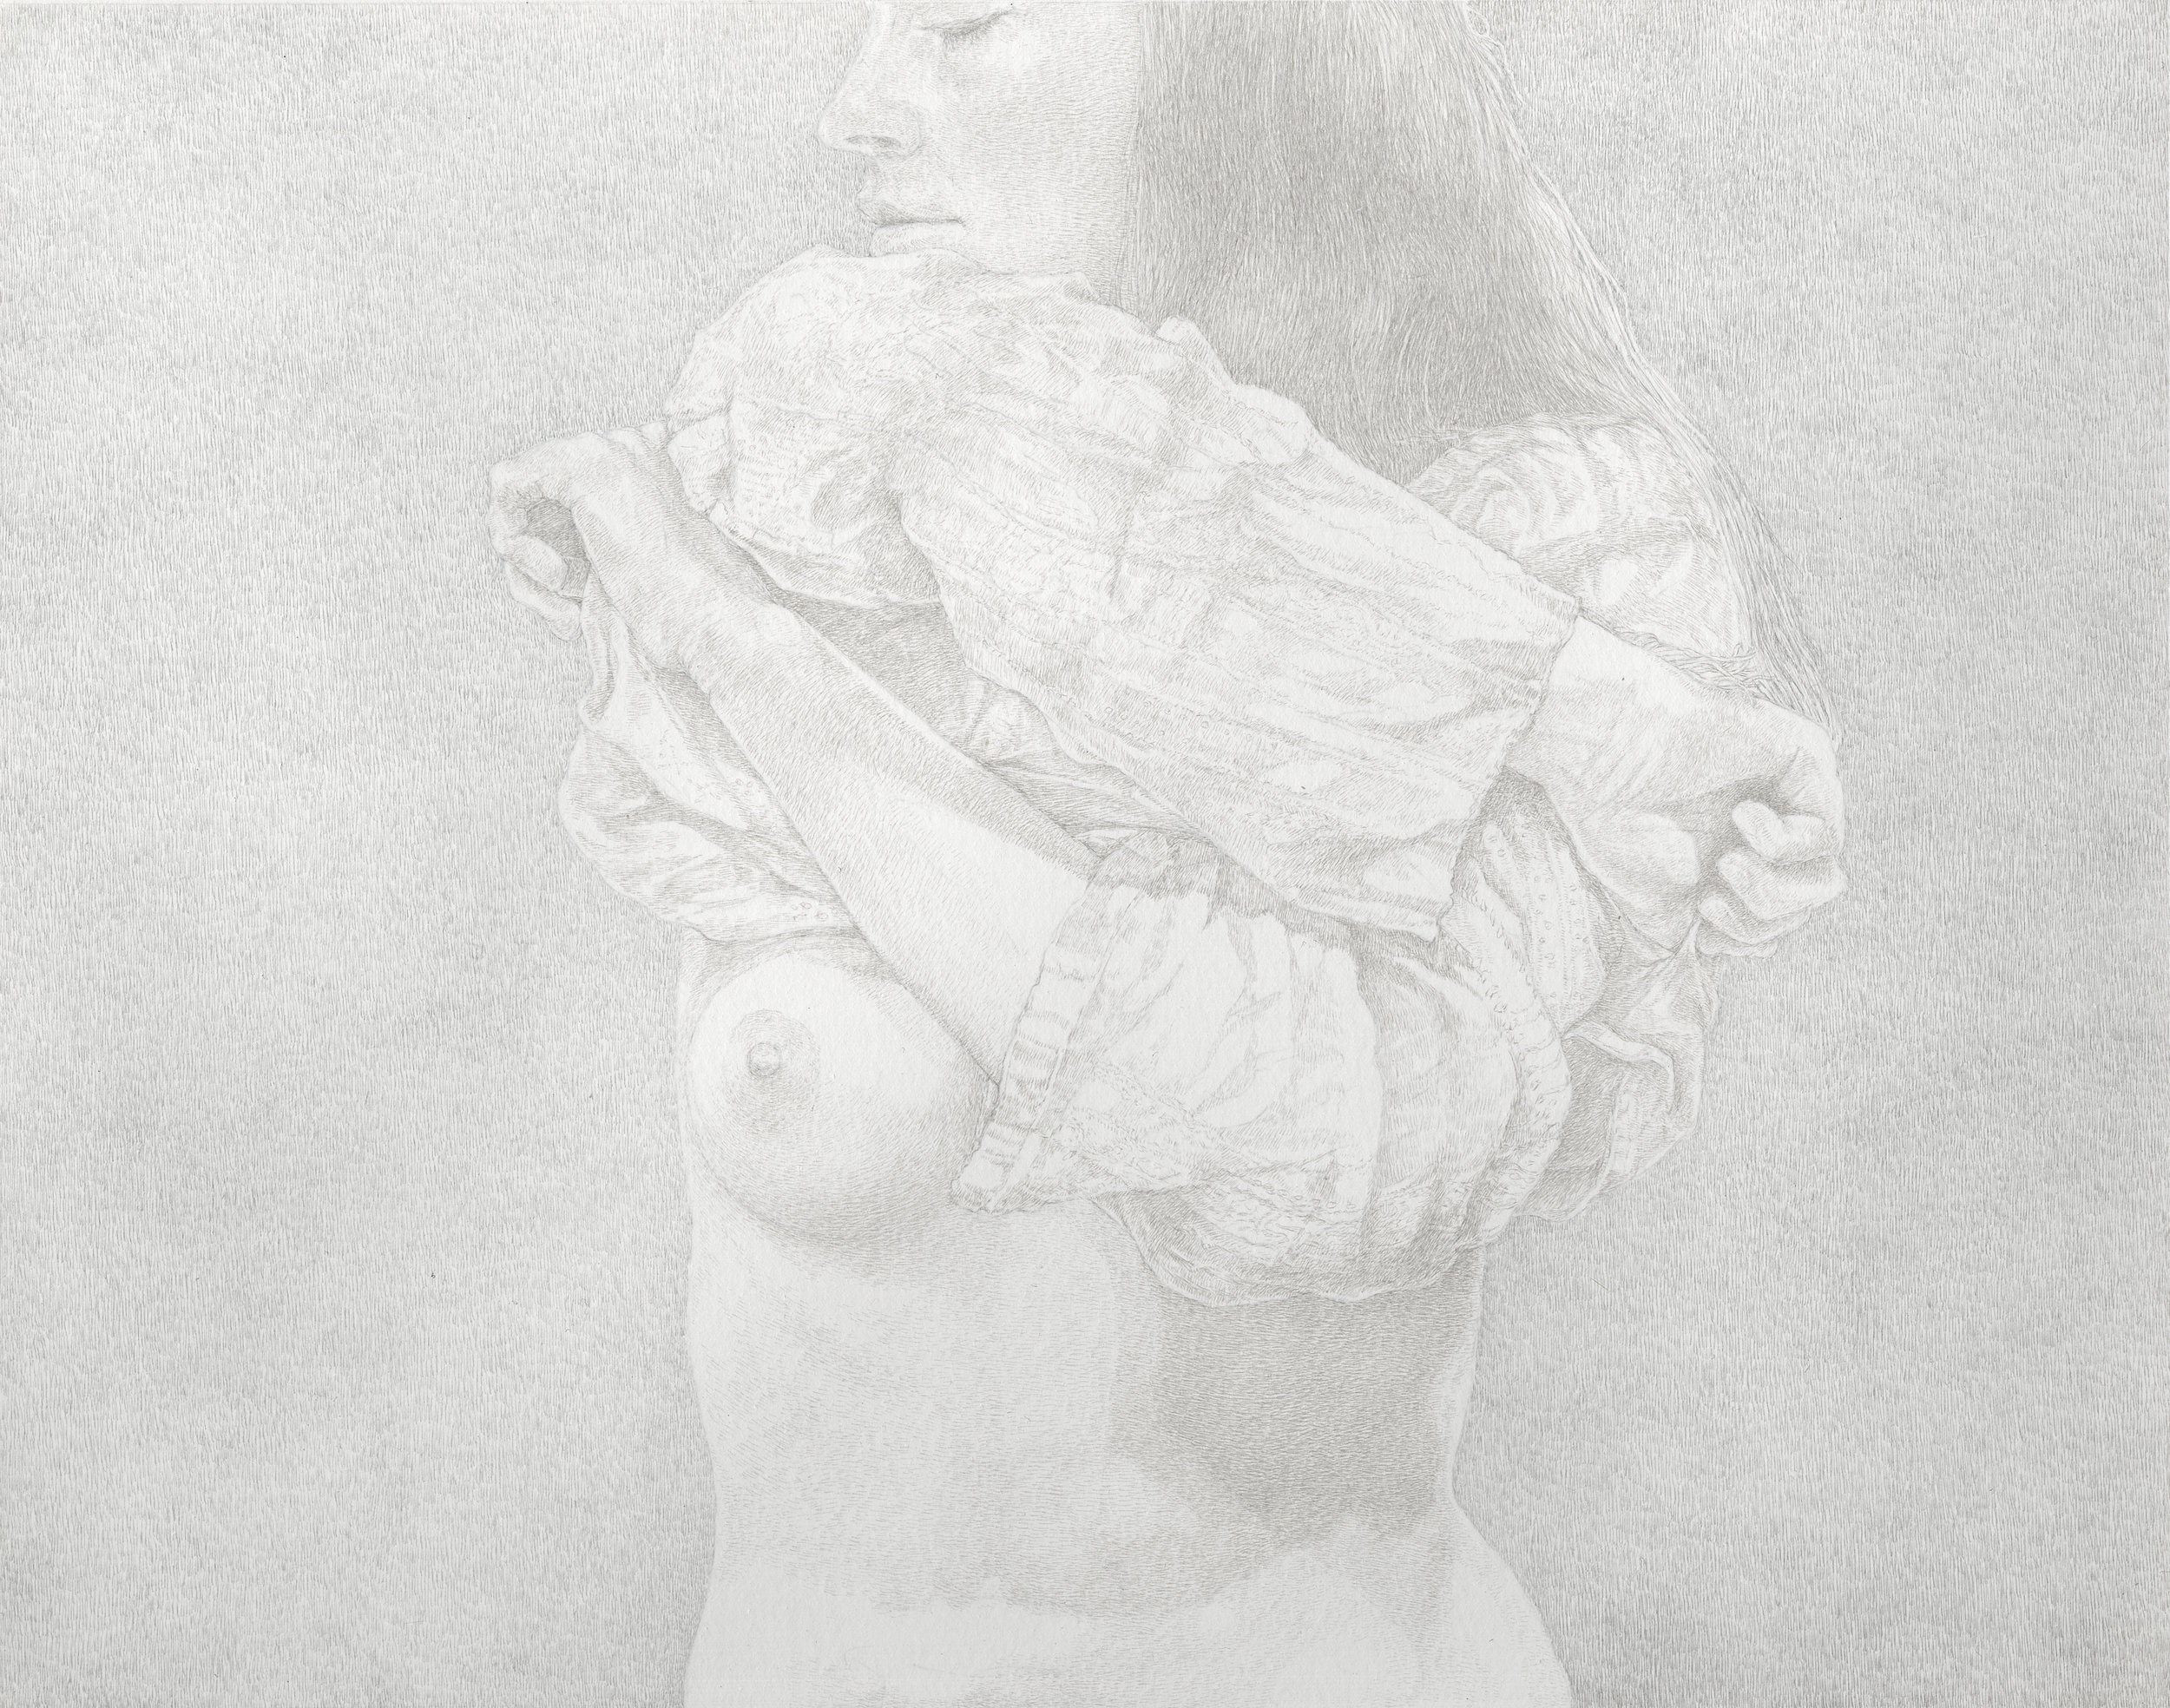 """""""The Friday Sessions - The Gauze Shirt"""" by James Grubola, silverpoint, POR"""